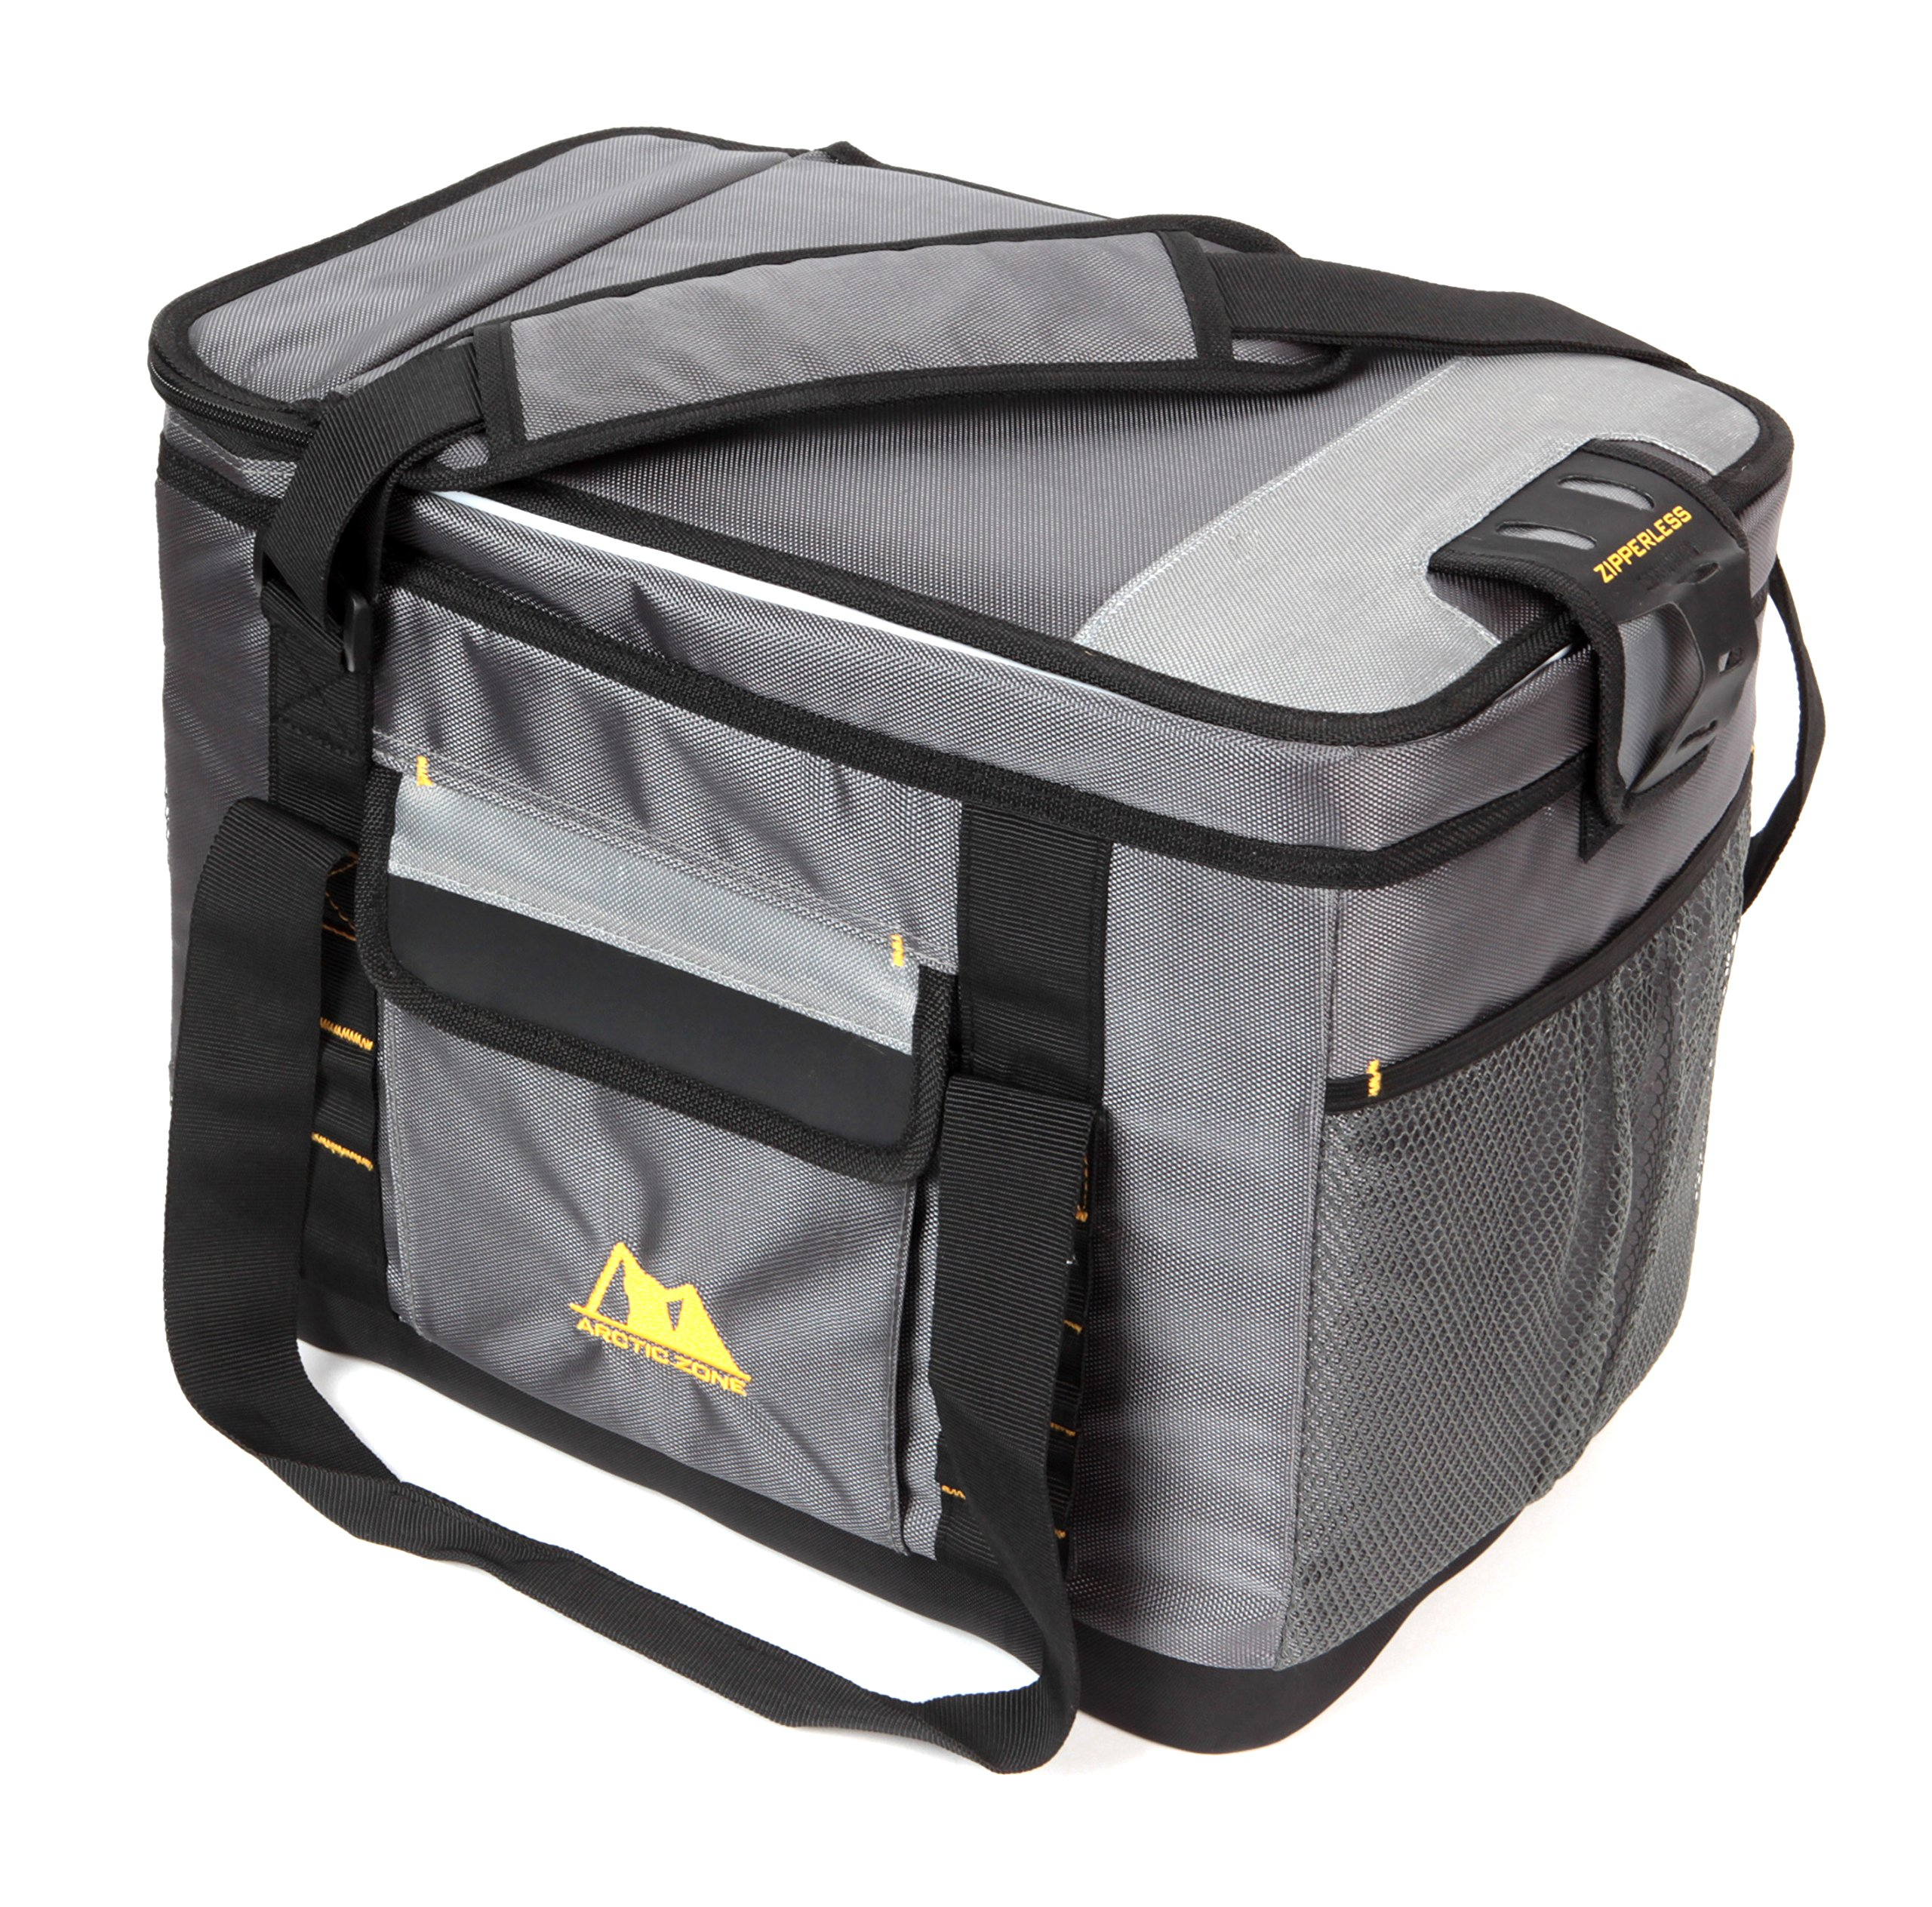 Arctic Zone Pro 30 (24+6) Can Zipperless Cooler by Arctic Zone